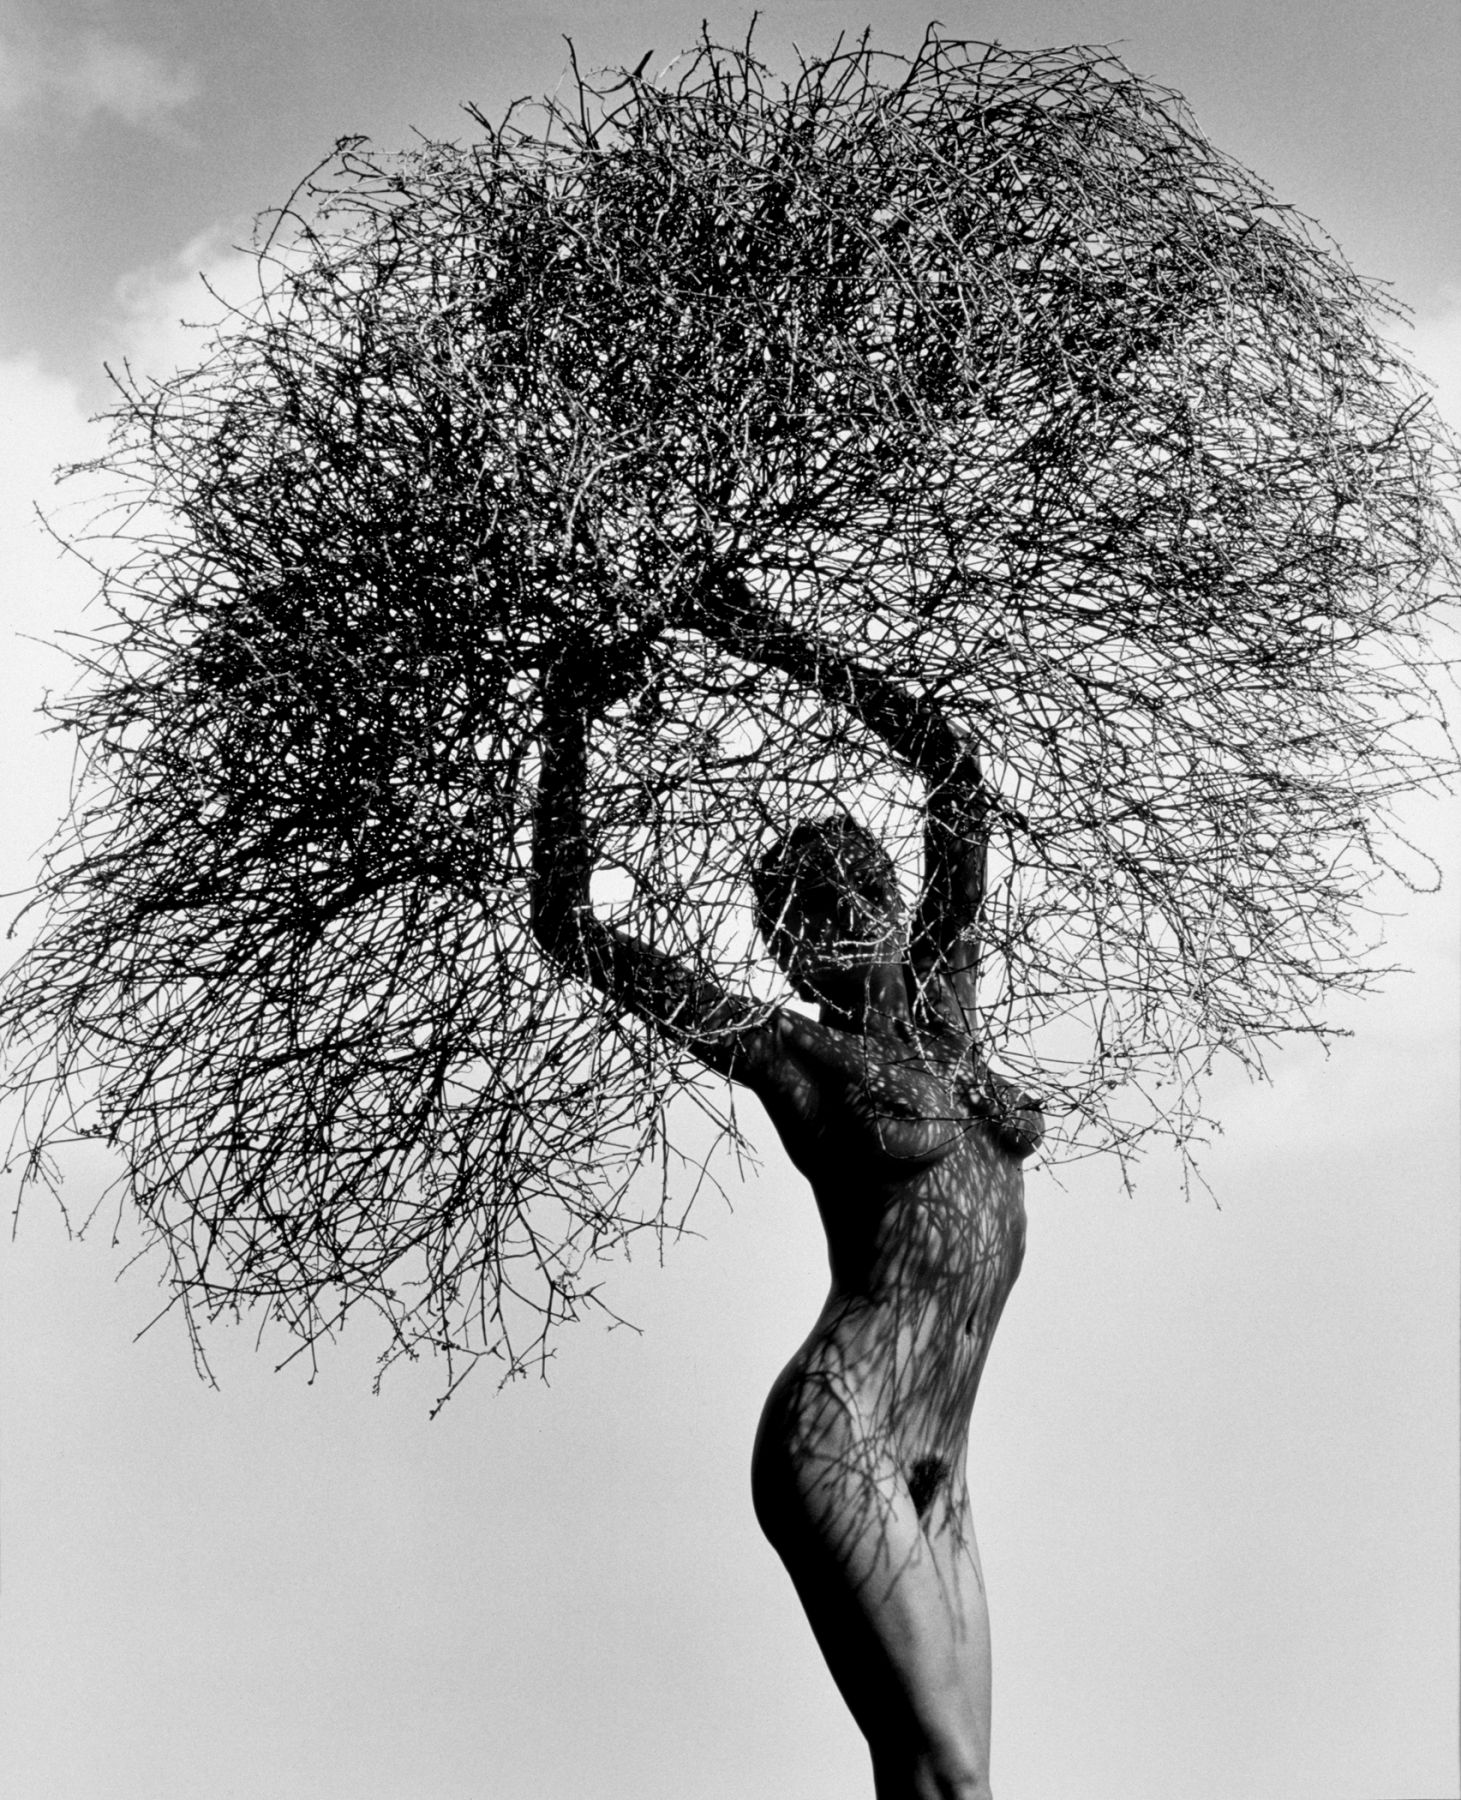 herb ritts neith with tumbleweed paradise cove